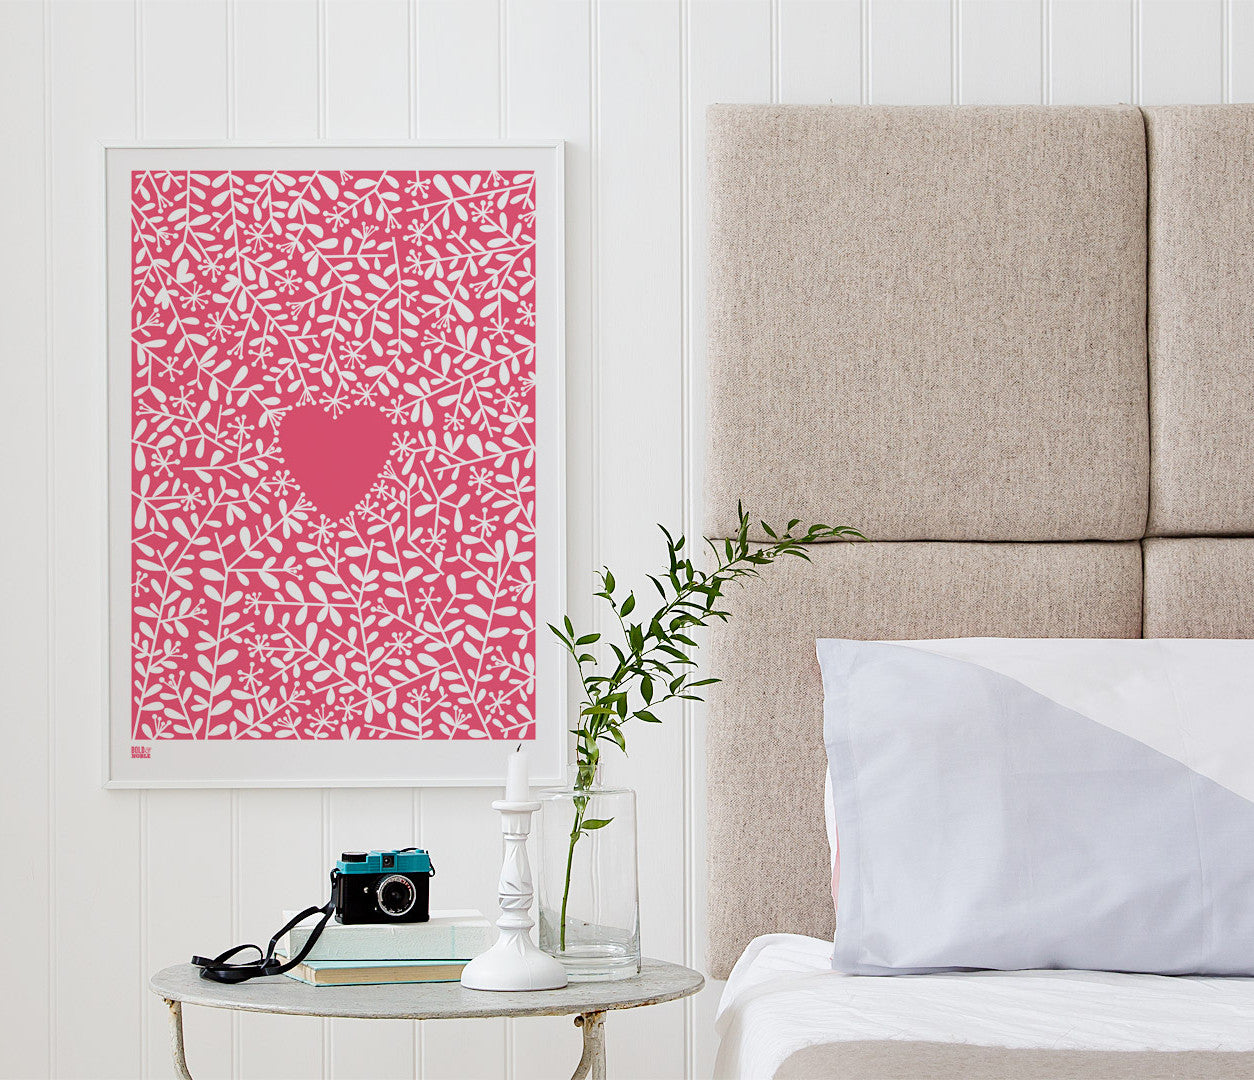 Wall Art Ideas: Economical Screen Prints, Love Grows Print in Raspberry Sorbet